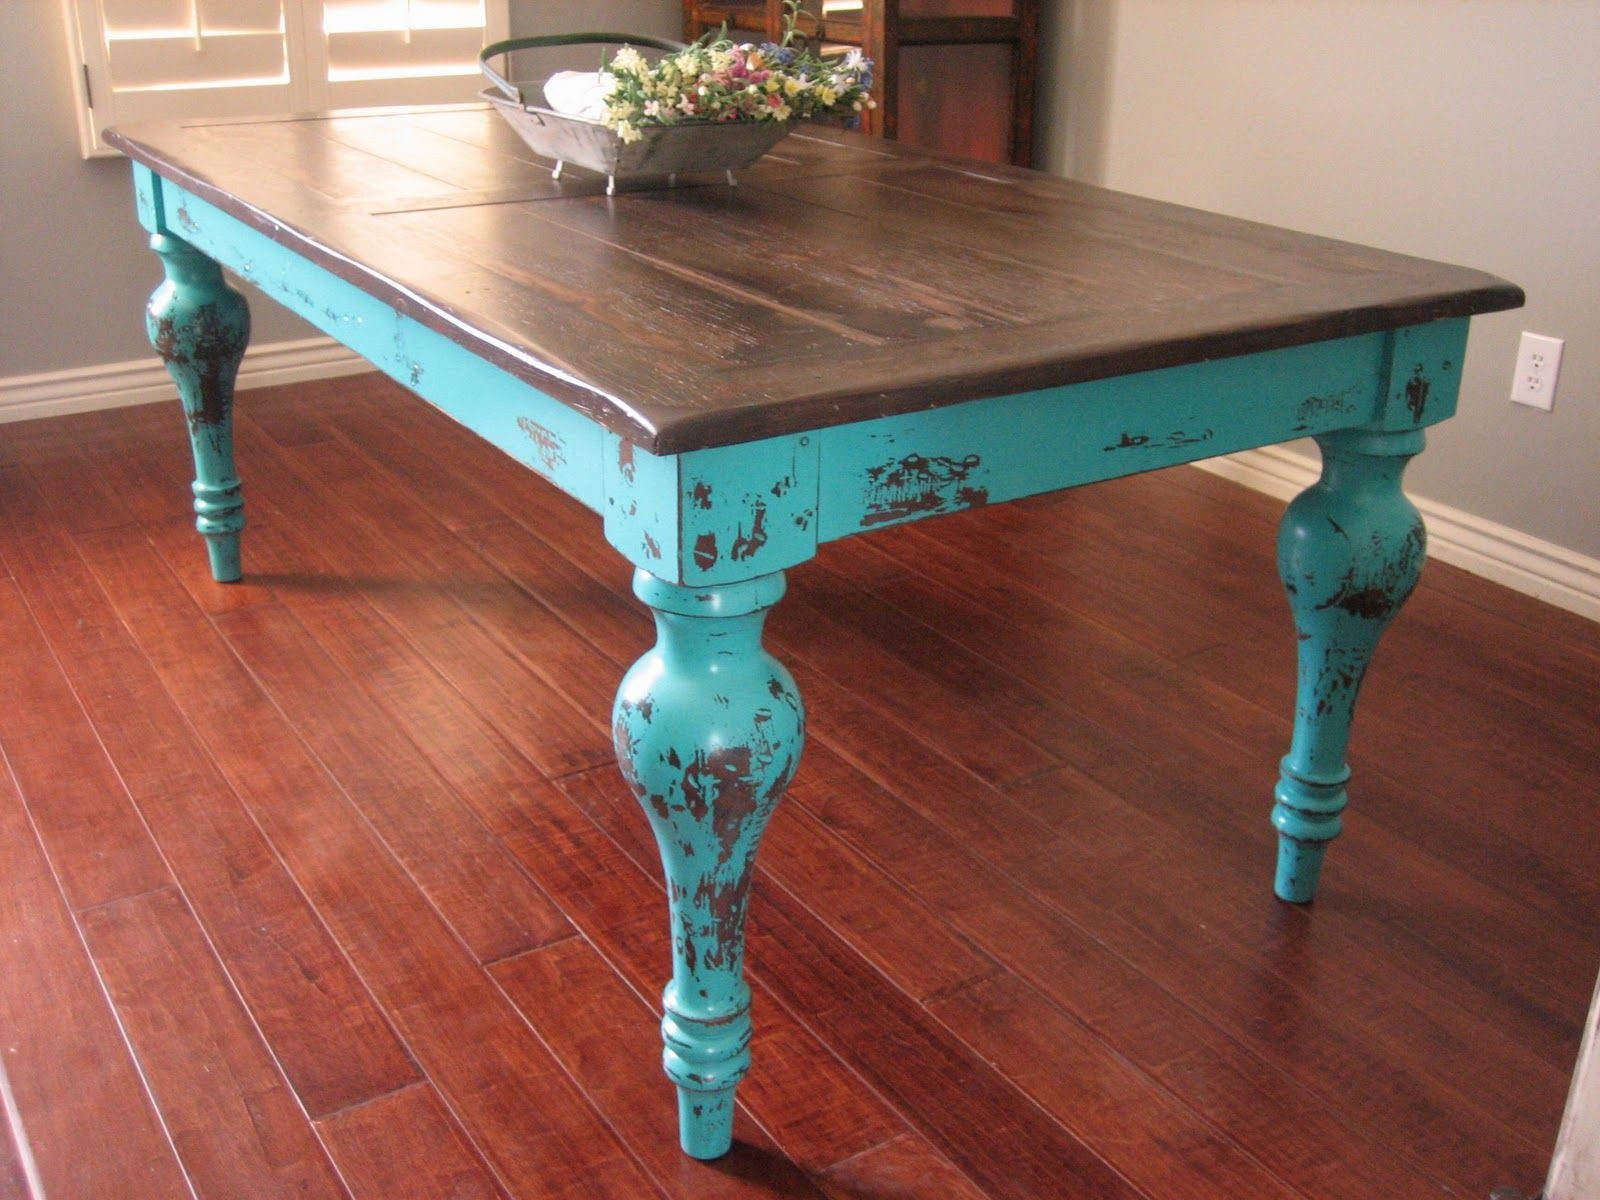 European Paint Finishes Rustic Turquoise Dining Table I could